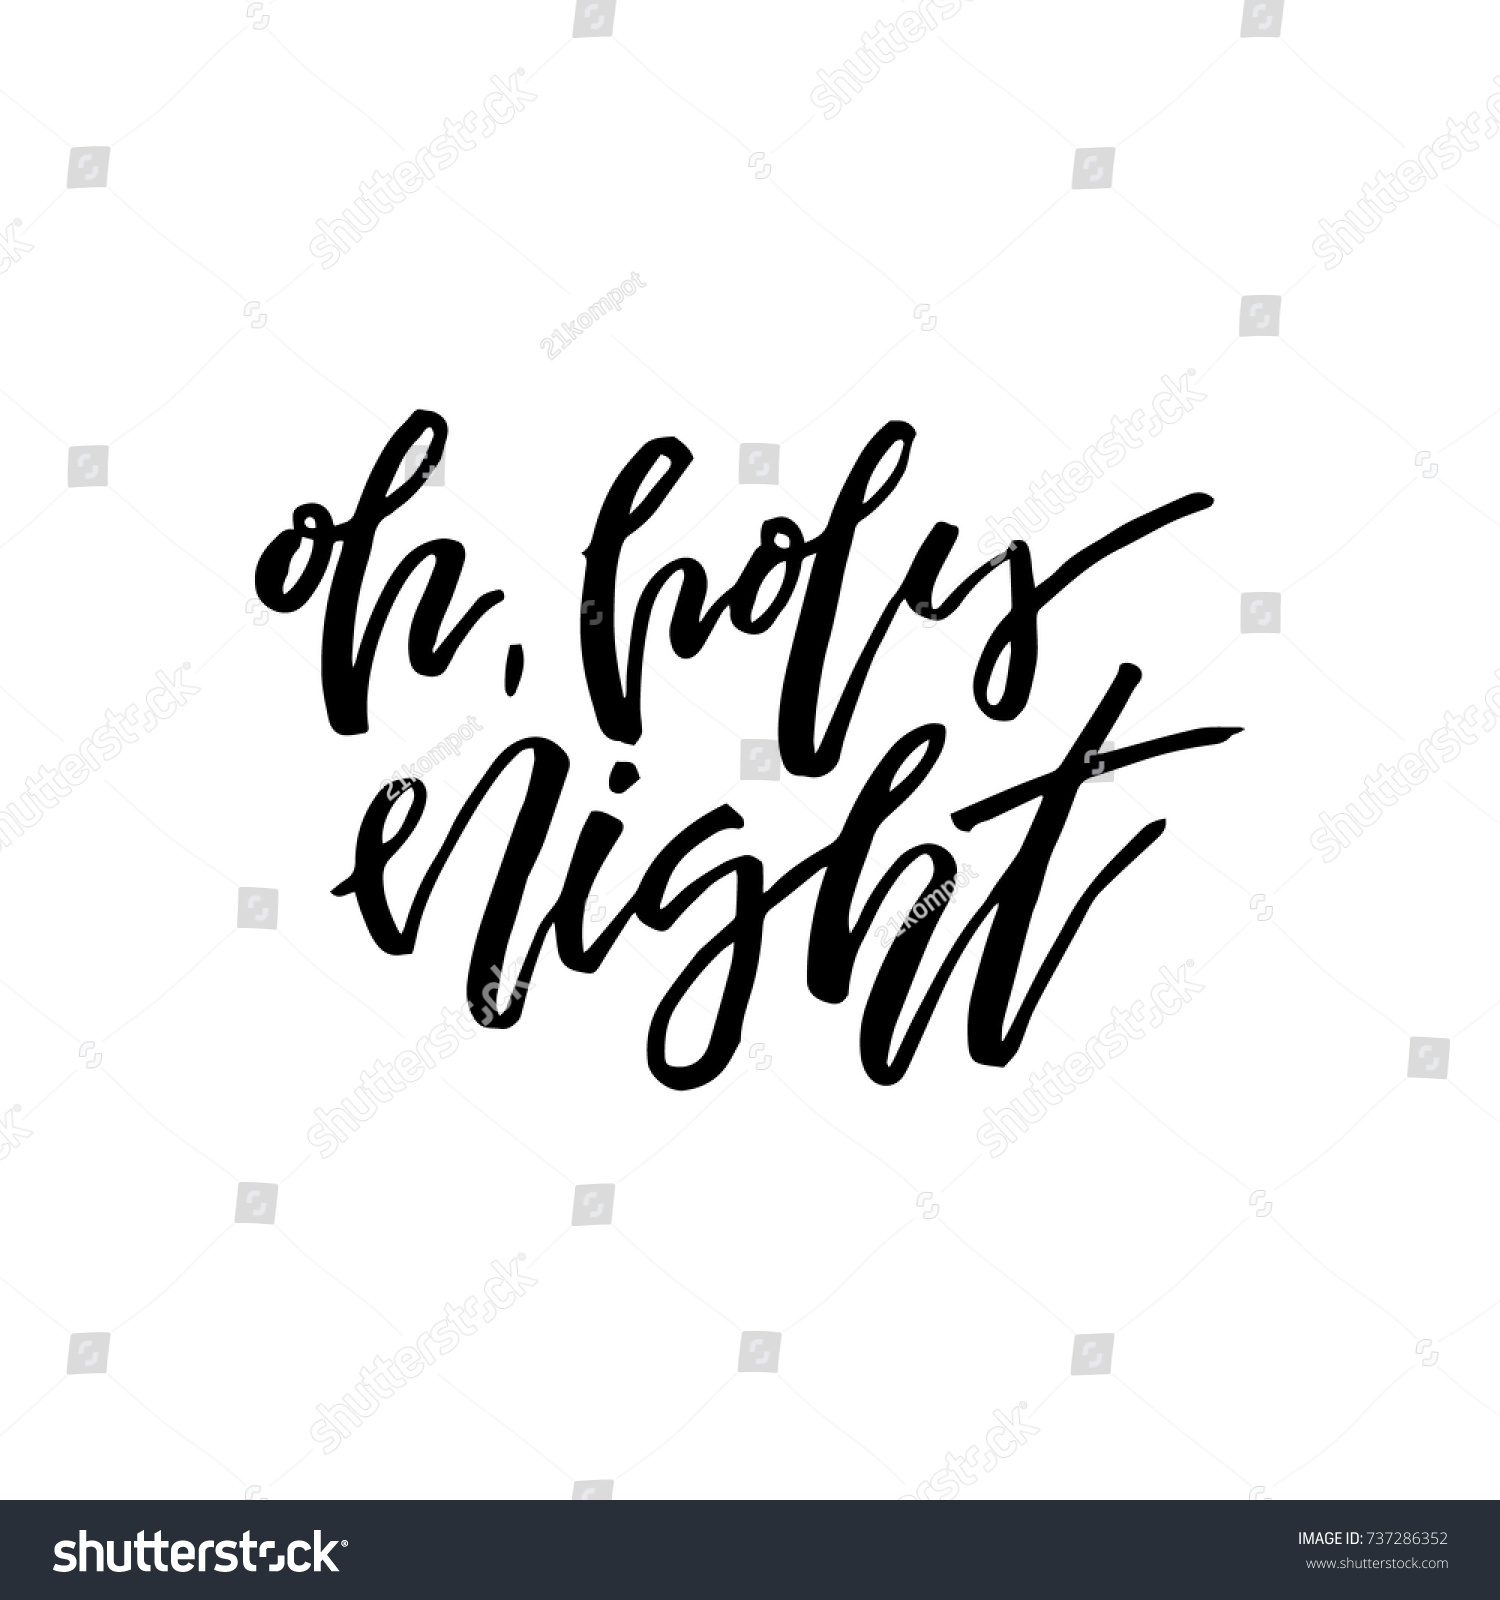 Merry christmas card calligraphy oh holy stock vector 737286352 merry christmas card with calligraphy oh holy night template for greetings kristyandbryce Image collections